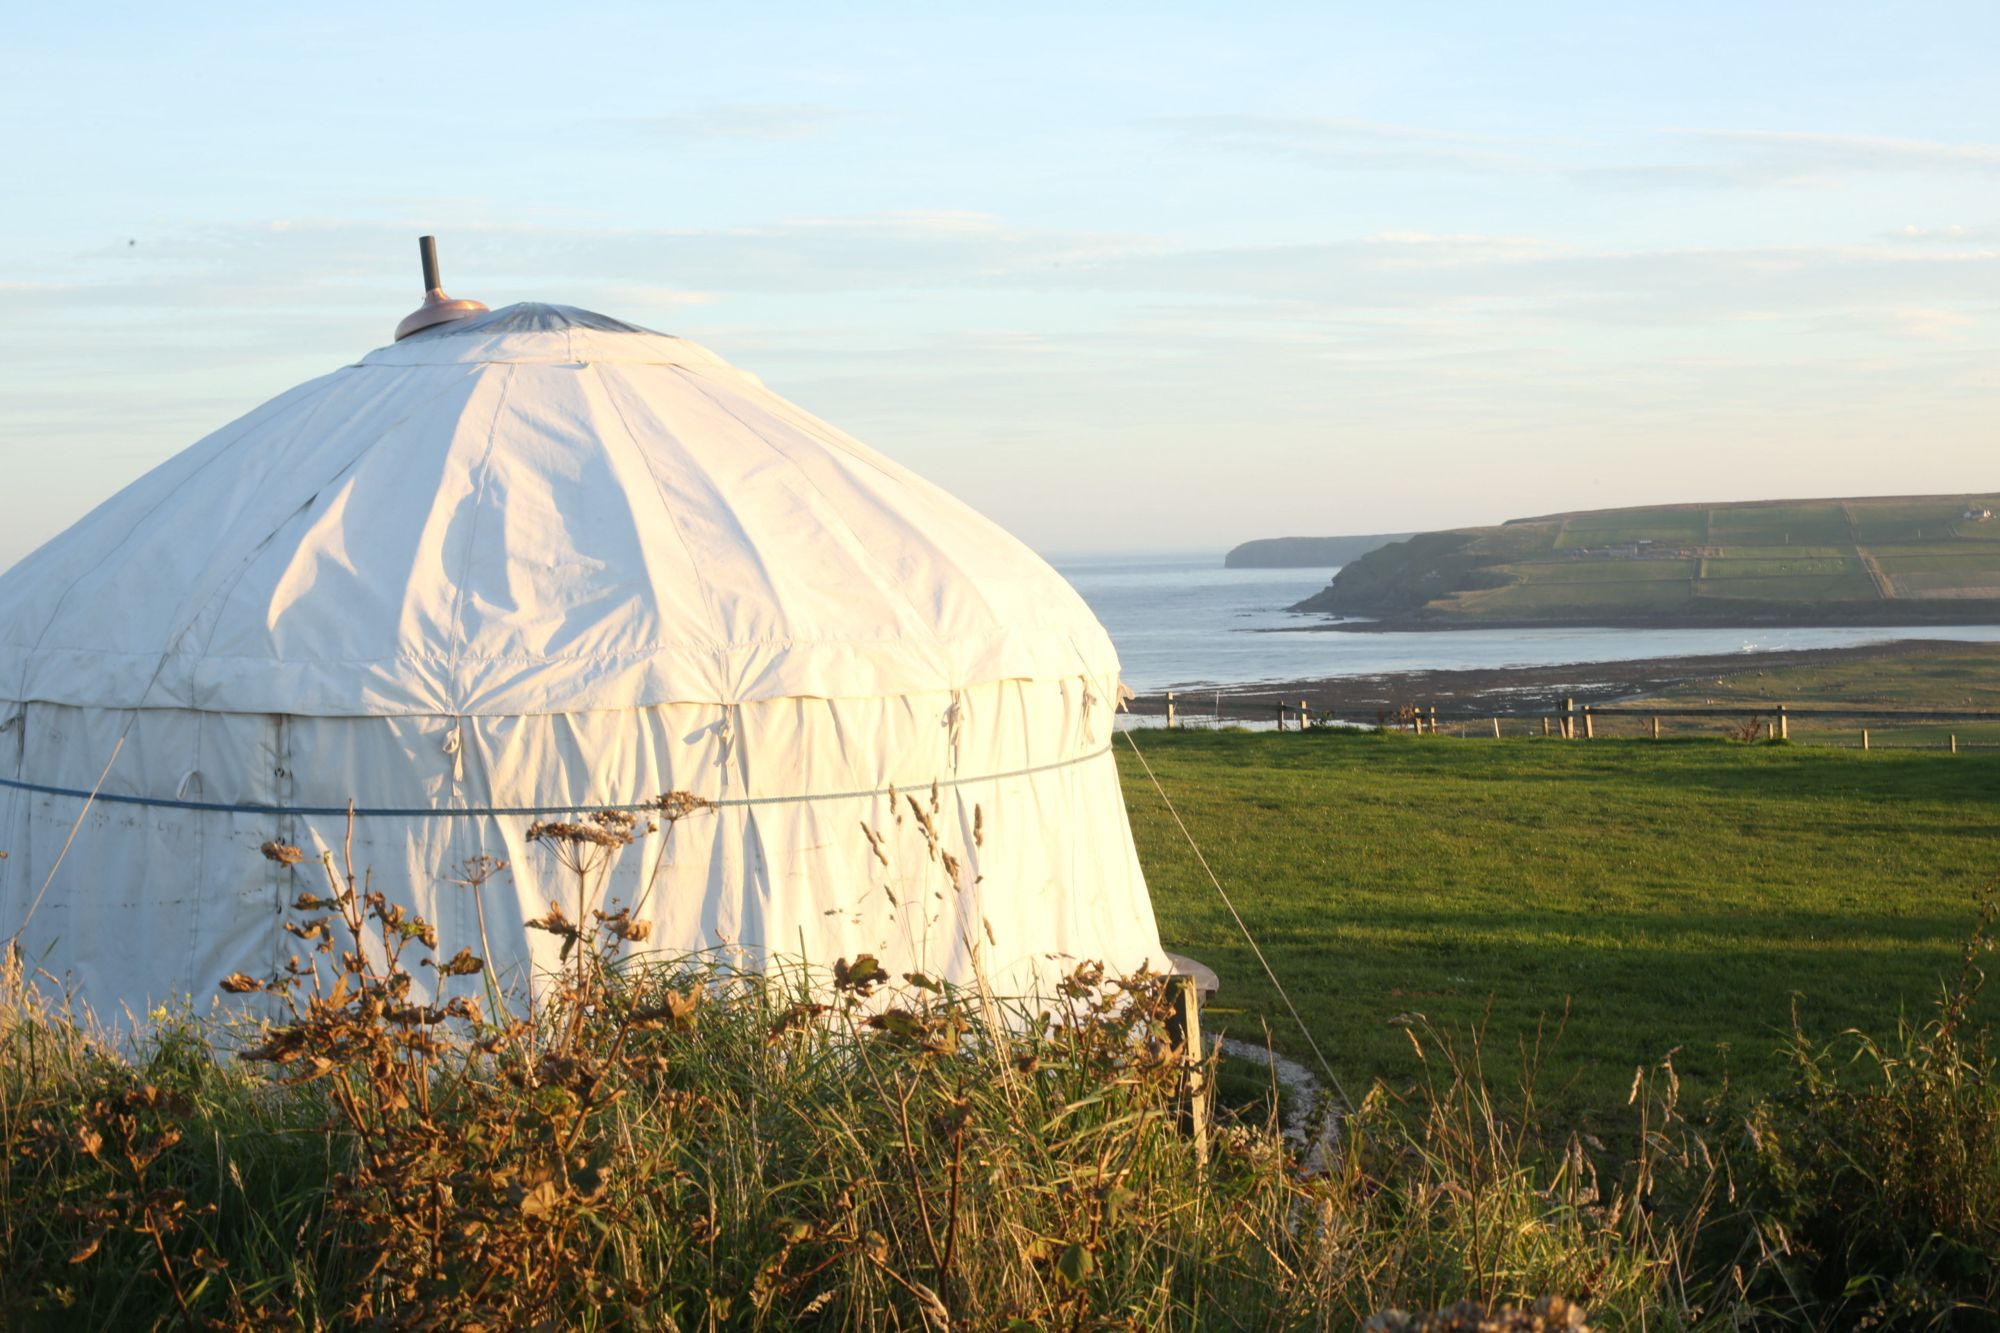 Campsites in Orkney - campsites uk scotland scottish-isles orkney at Cool Camping